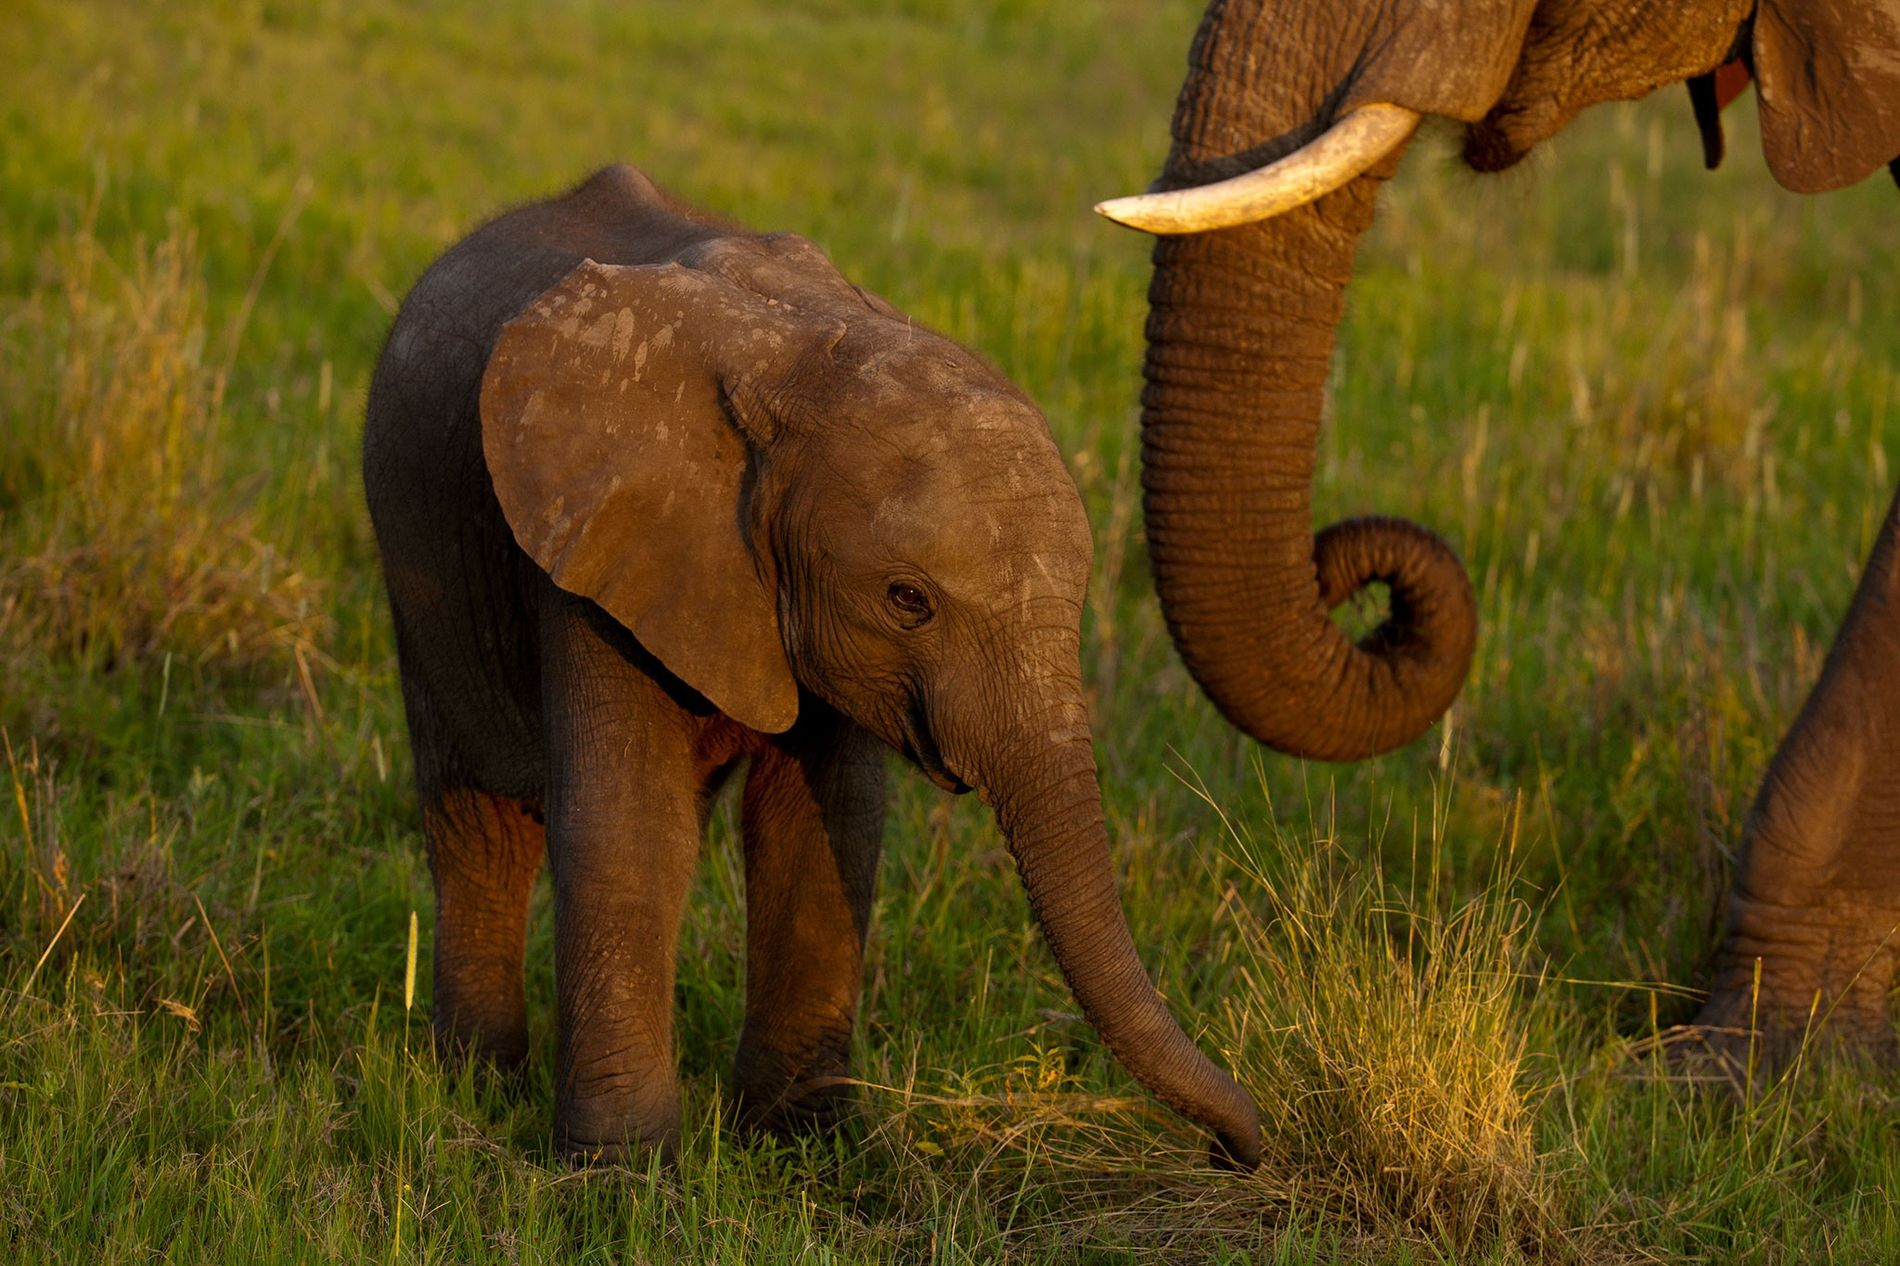 To address what it says is an elephant overpopulation problem and make some money, Zimbabwe has sold young elephants to China in recent years.